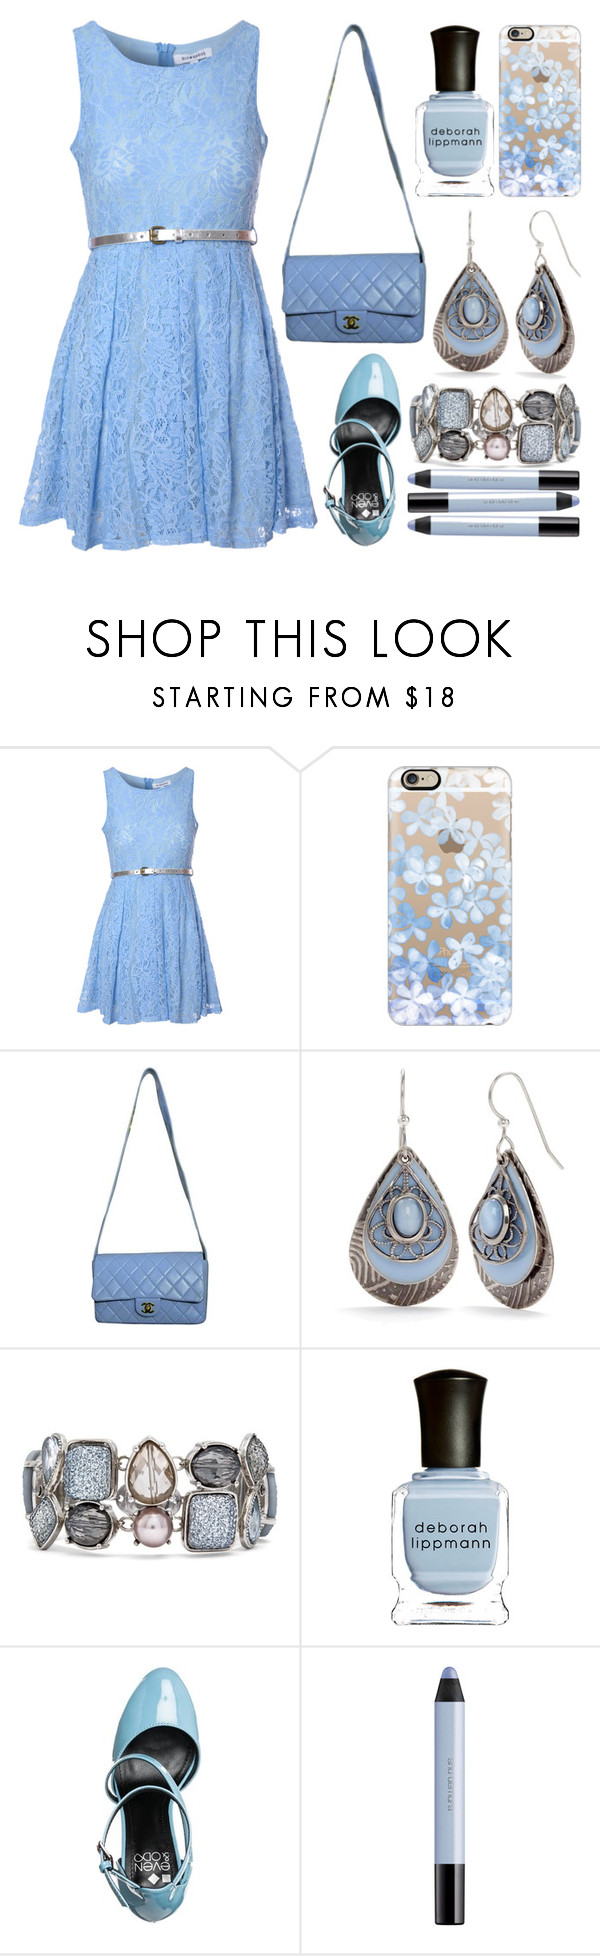 """""""Pastel Blue Spring Outfit"""" by music-and-fashion-111 ❤ liked on Polyvore featuring Glamorous, Casetify, Chanel, Silver Forest, Chico's, Deborah Lippmann, even&odd and shu uemura"""